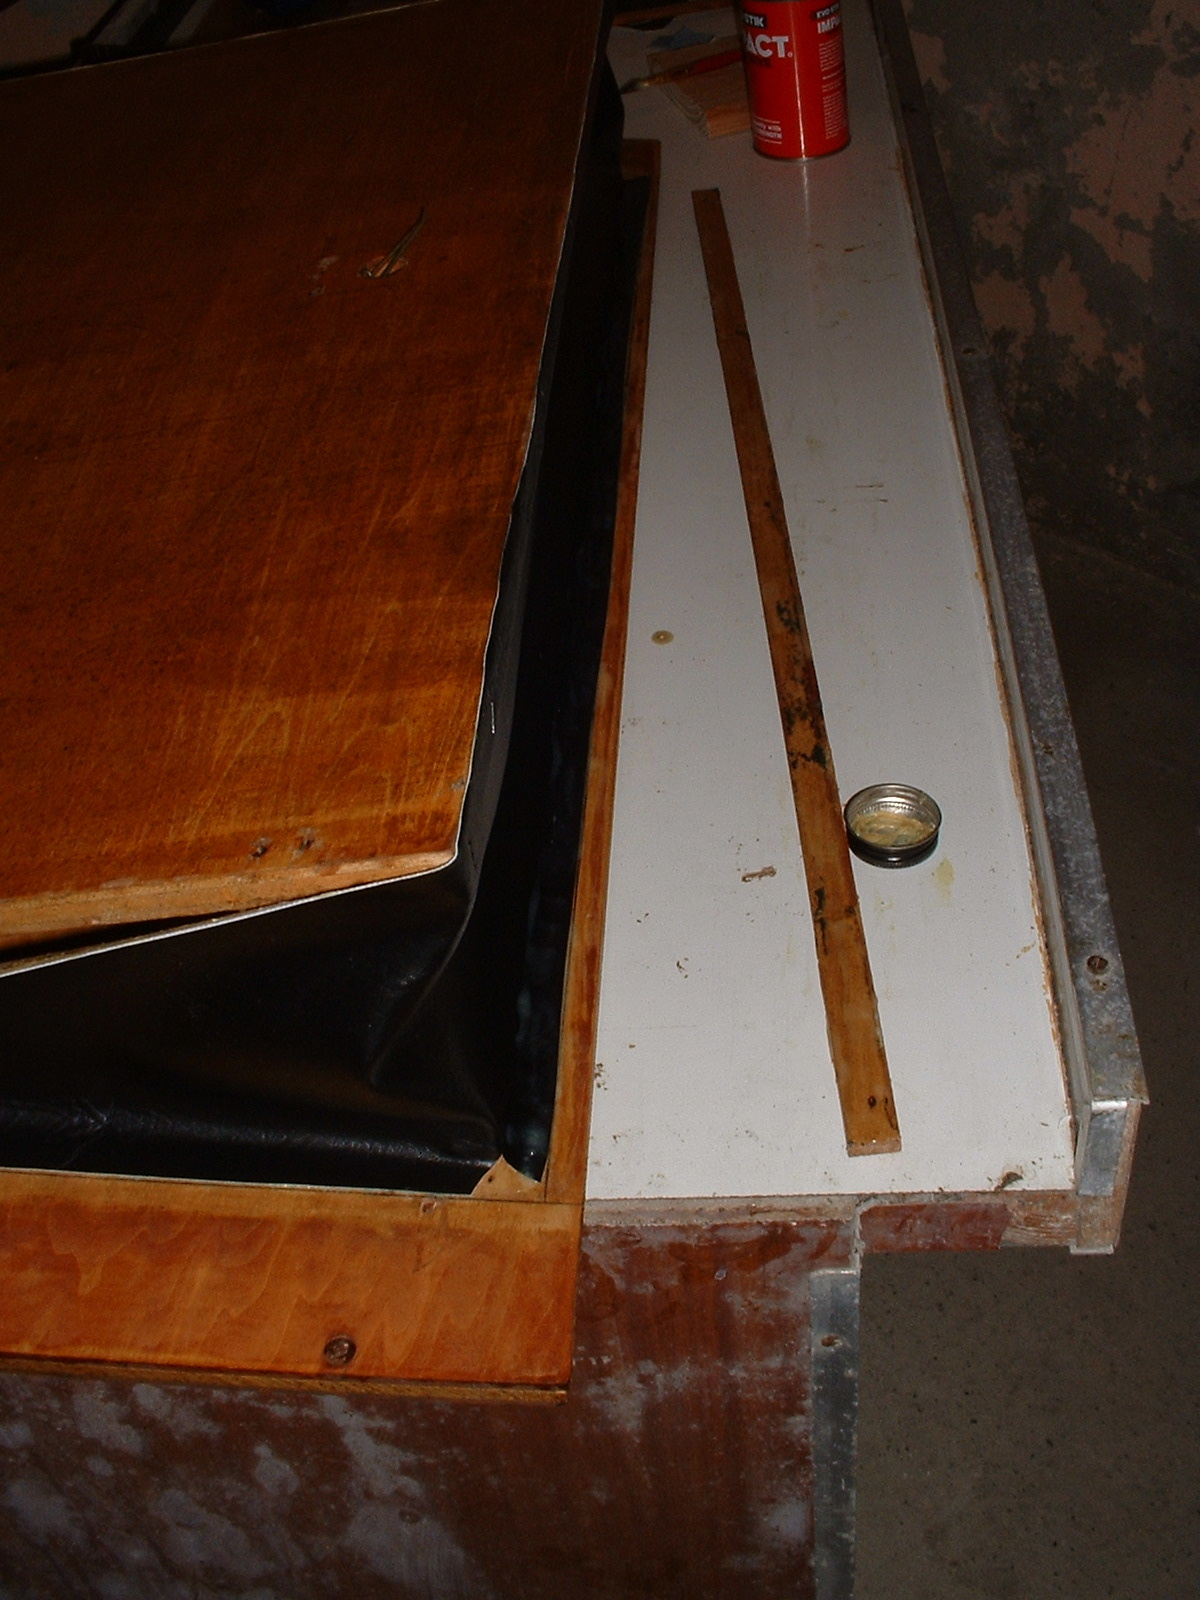 I recovered the bellows using upholstery leatherette. It's all I had available to me at the time and haven't used it since. Genuine bellows cloth is the only suitable material.